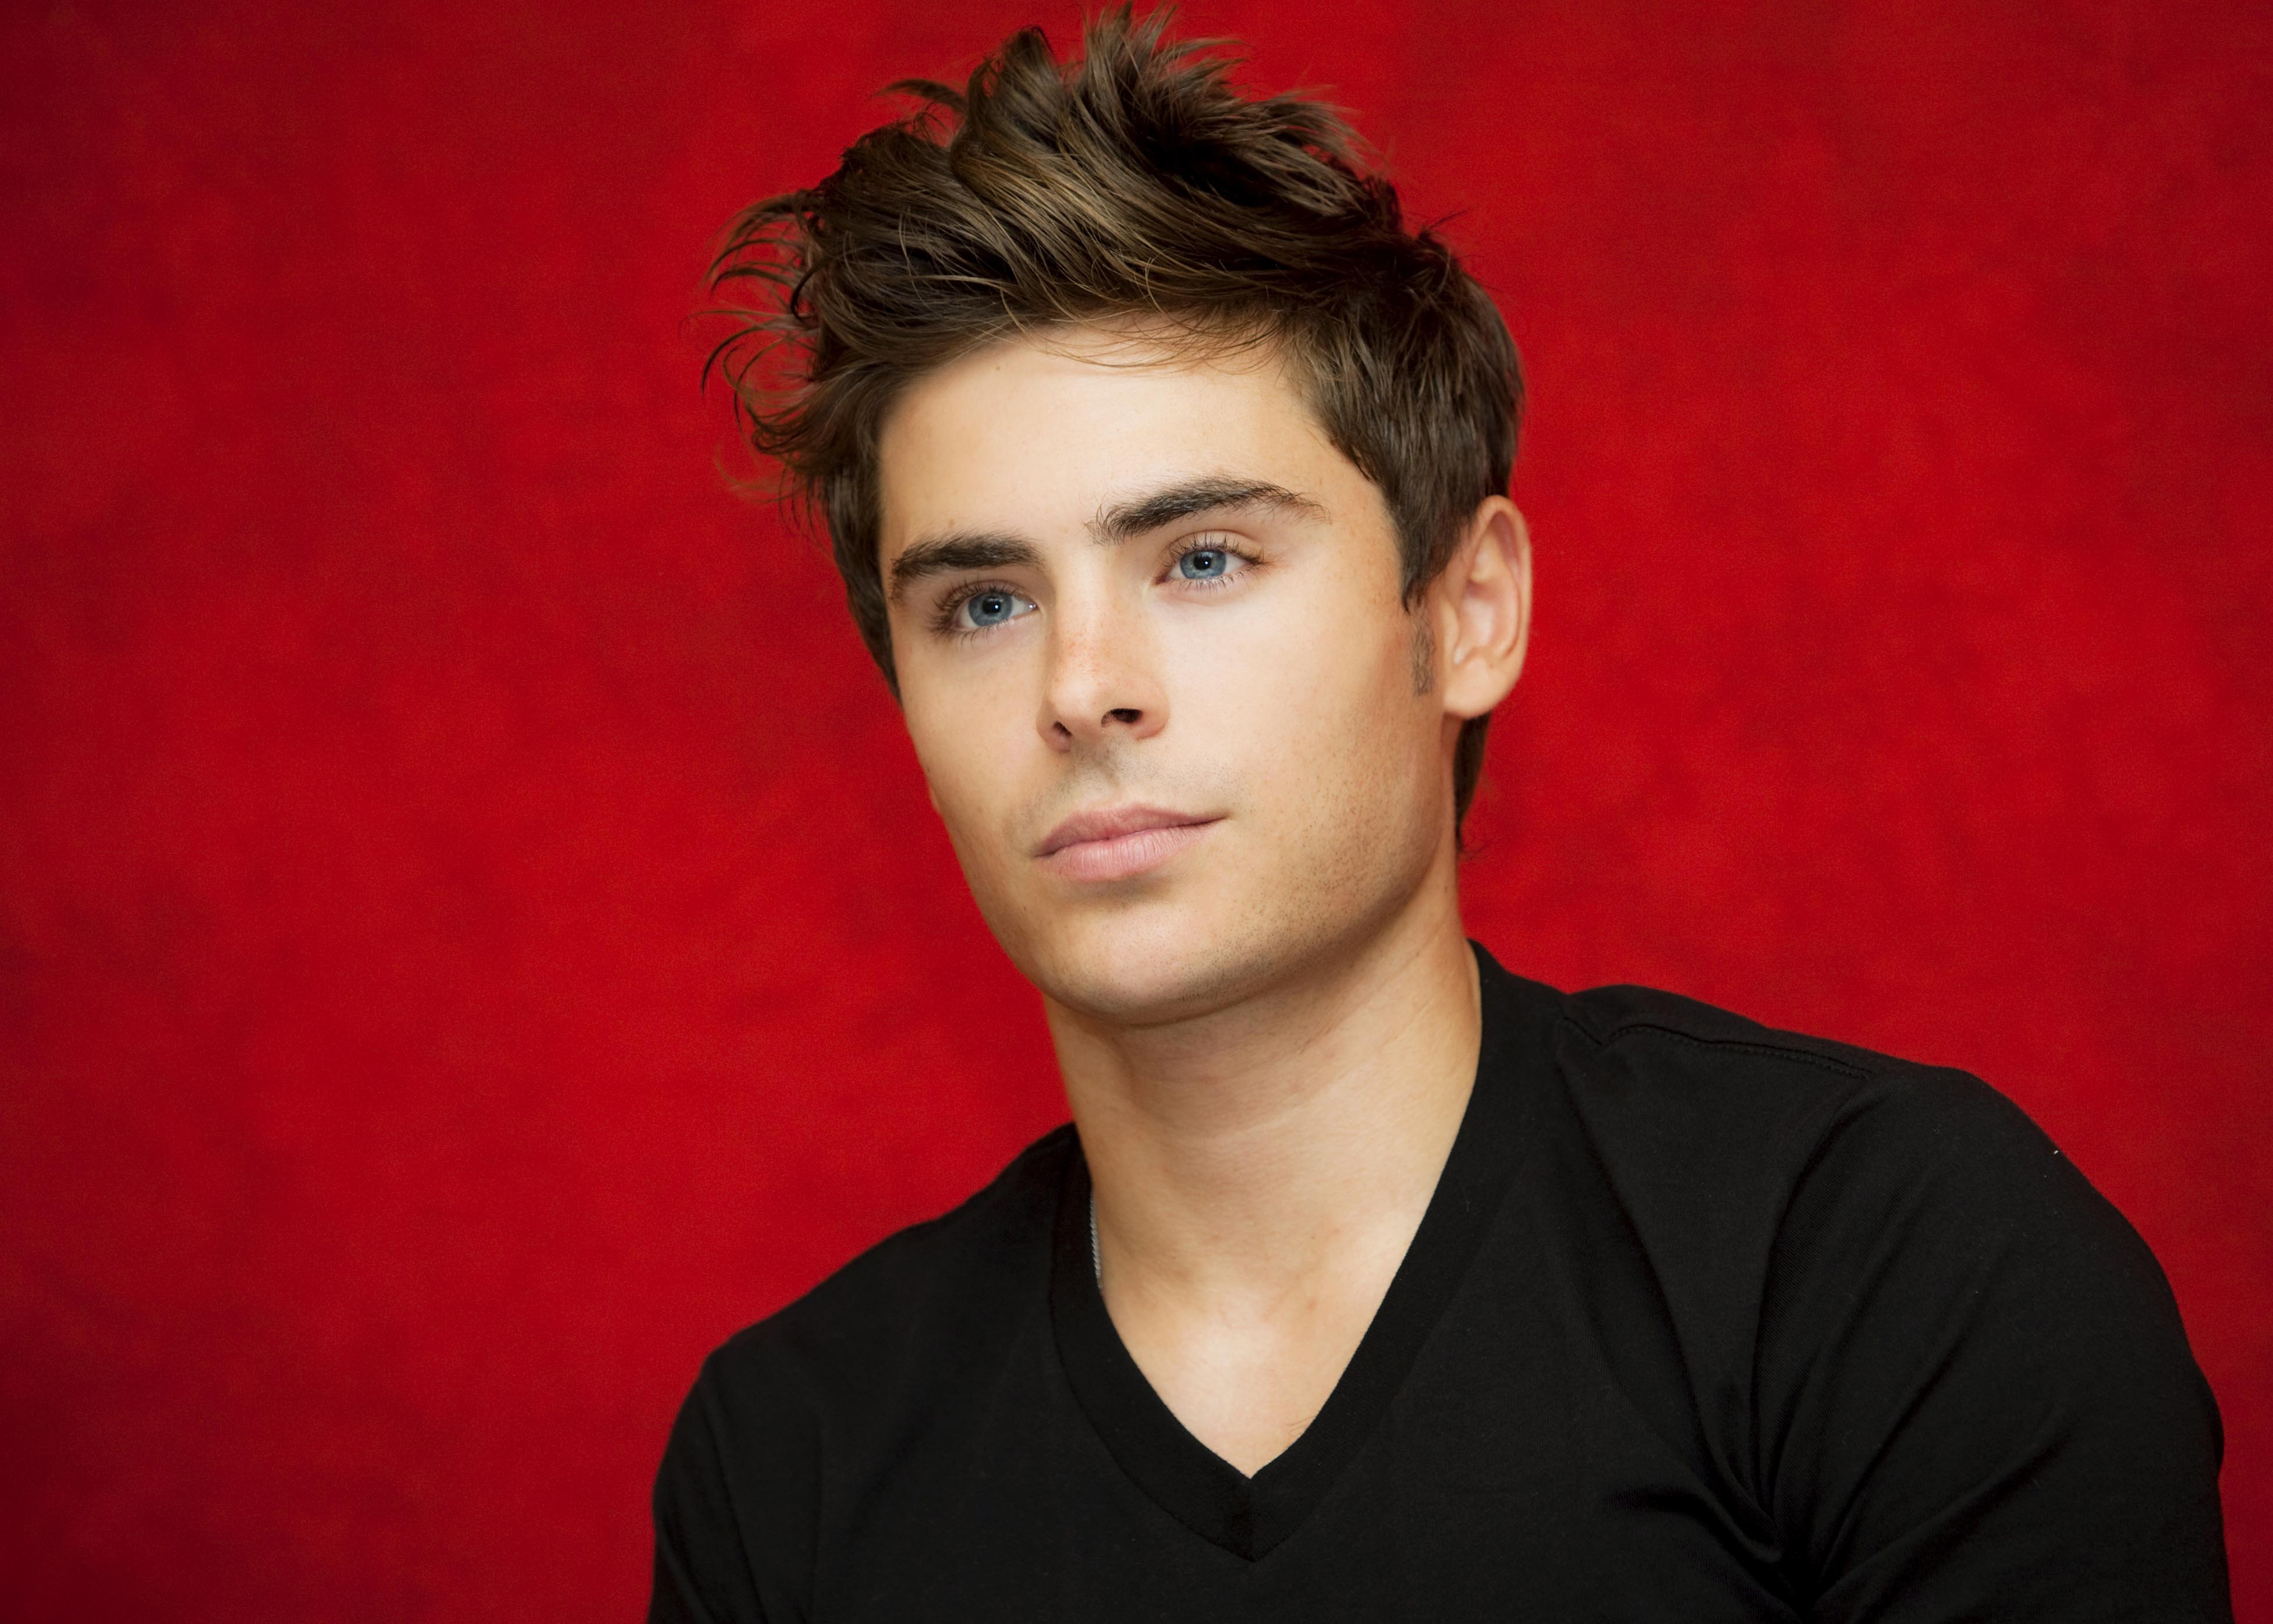 The latest Tweets from Zac Efron ZacEfron Traffic these days httpstco6vi4UKaGtr